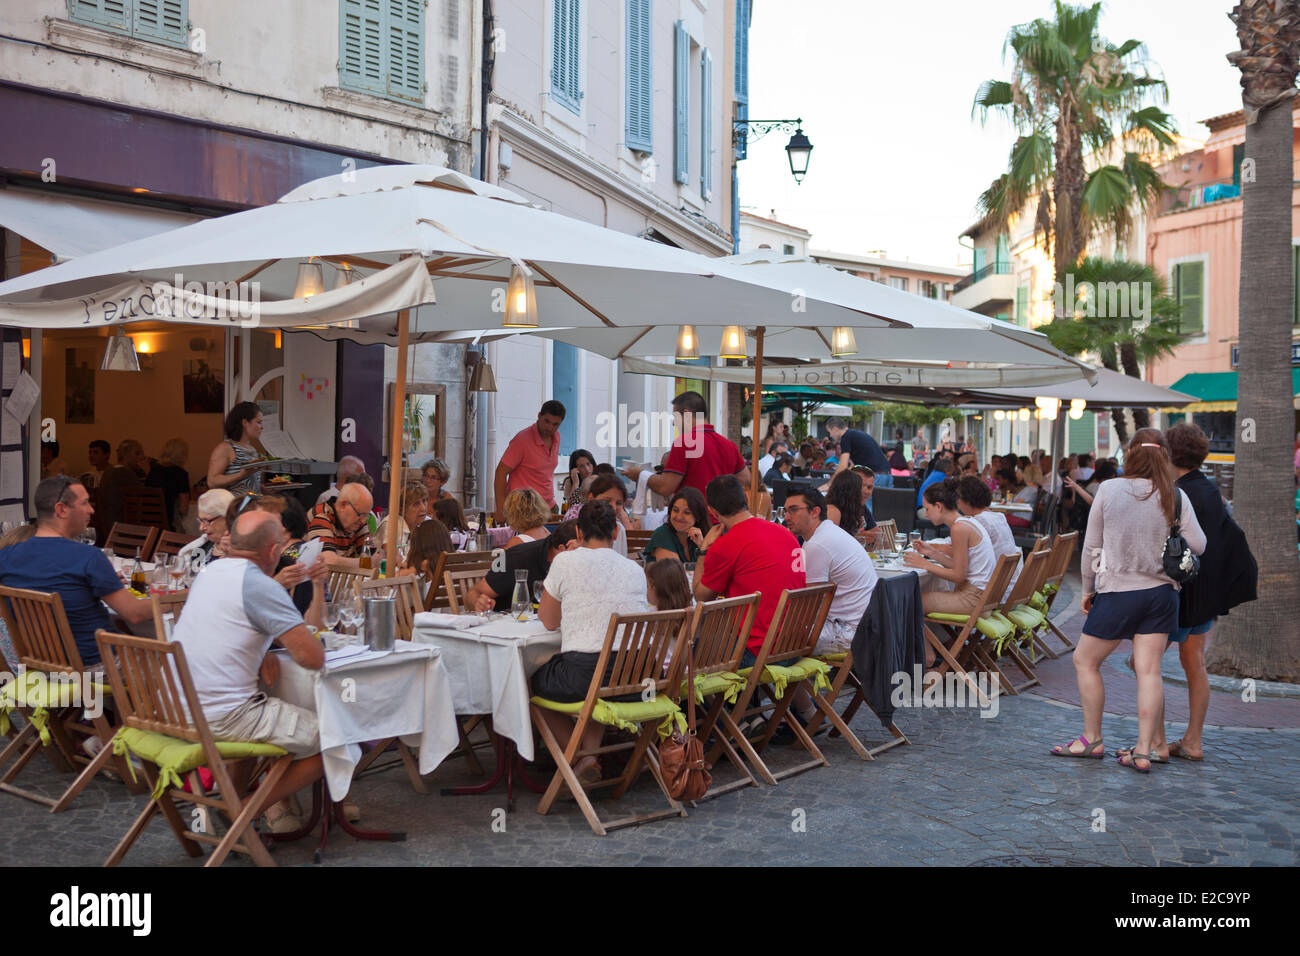 france var sanary sur mer restaurants in the marina stock photo royalty free image 70342042. Black Bedroom Furniture Sets. Home Design Ideas